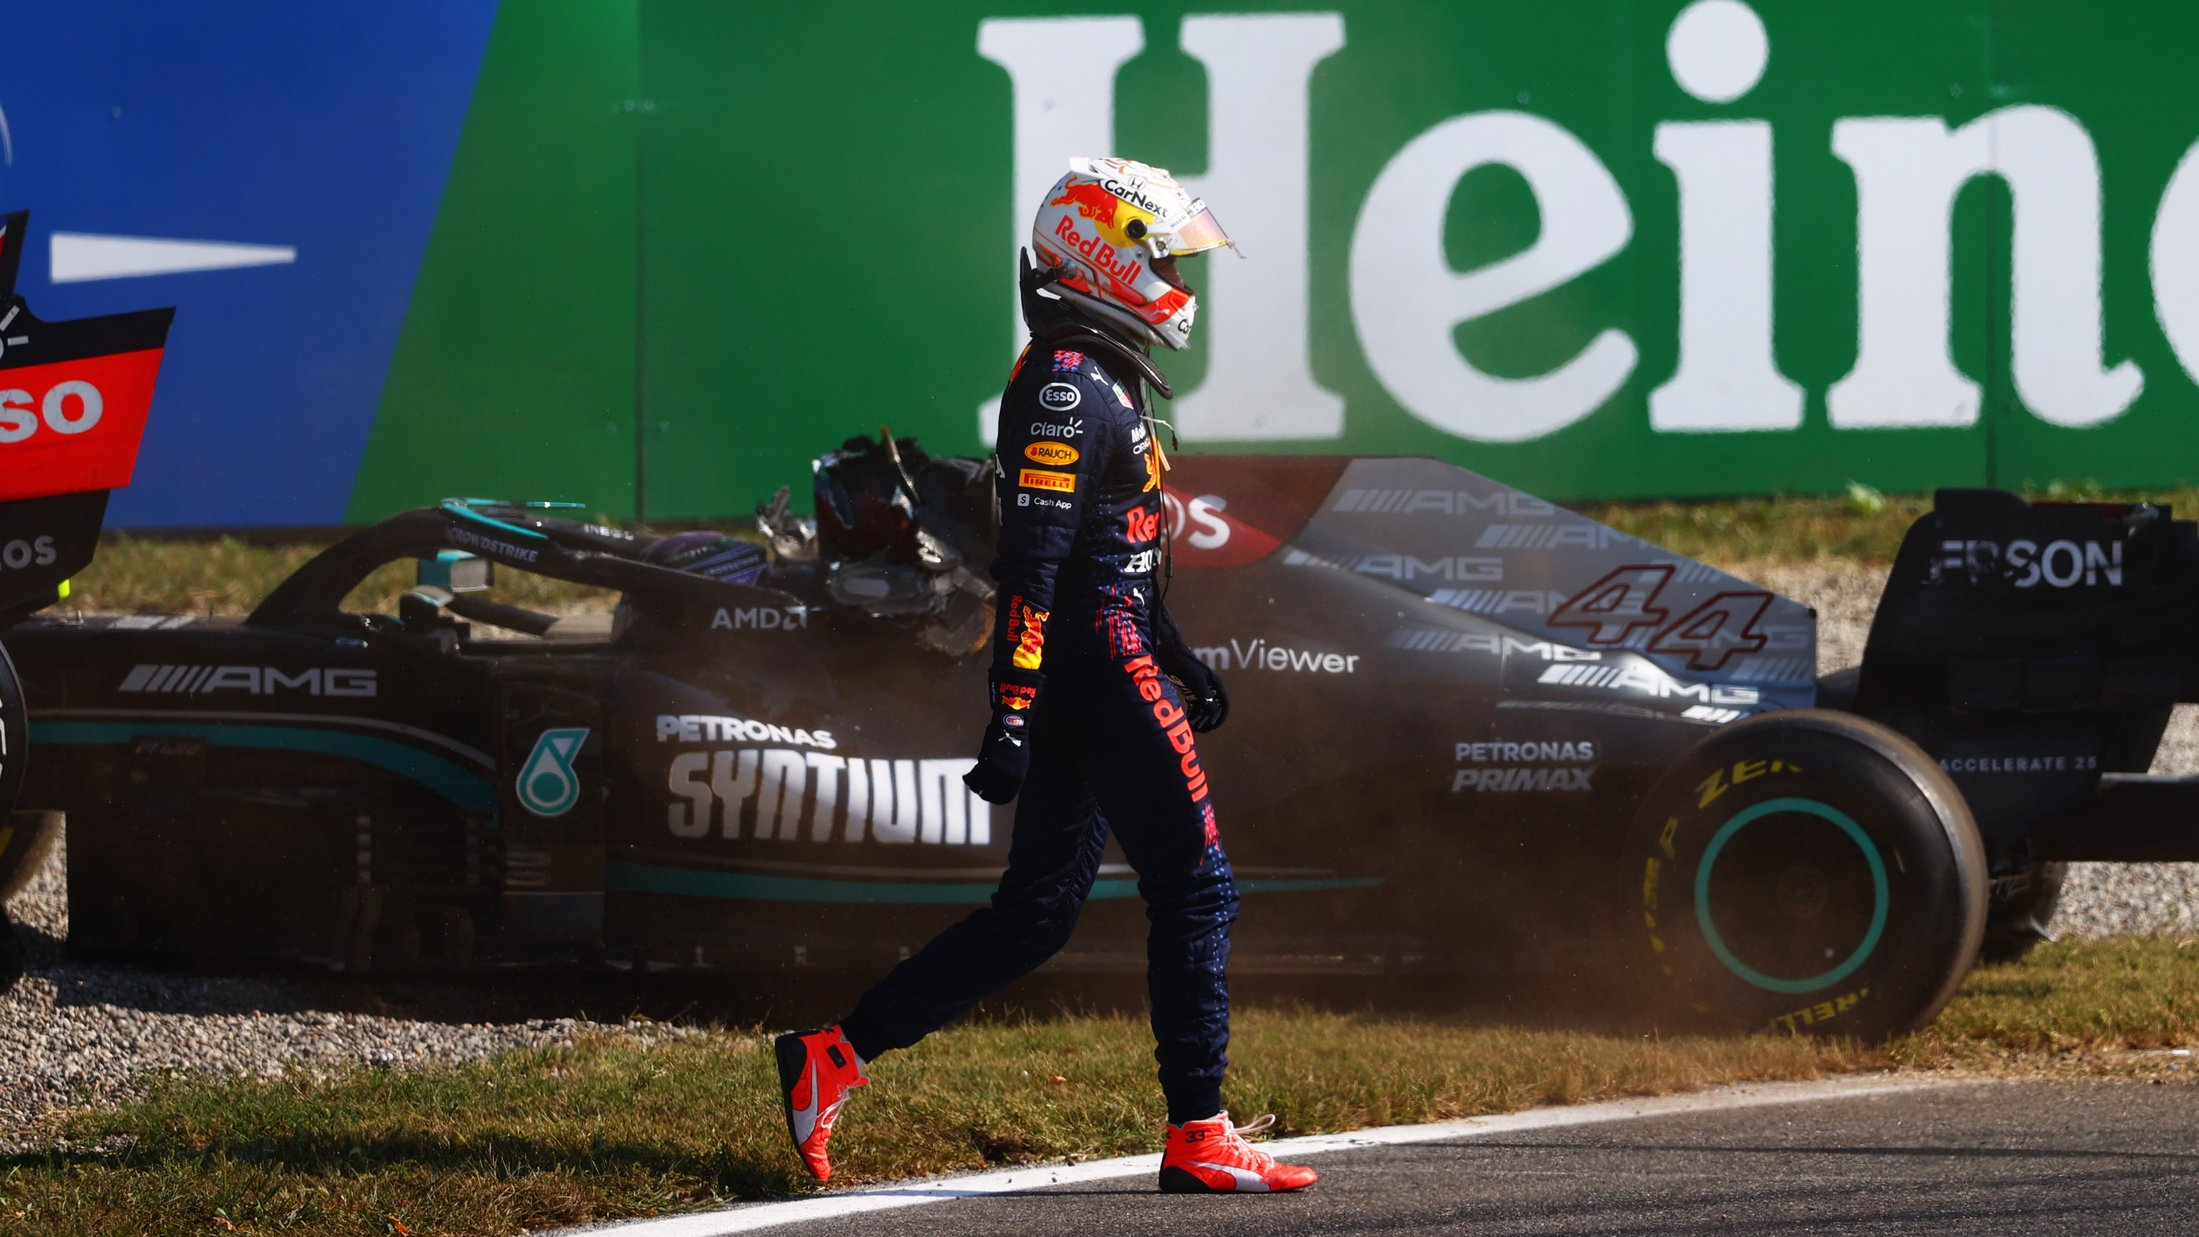 Max Verstappen handed three-place grid drop for Sochi after crash with Hamilton at Monza | Formula 1®